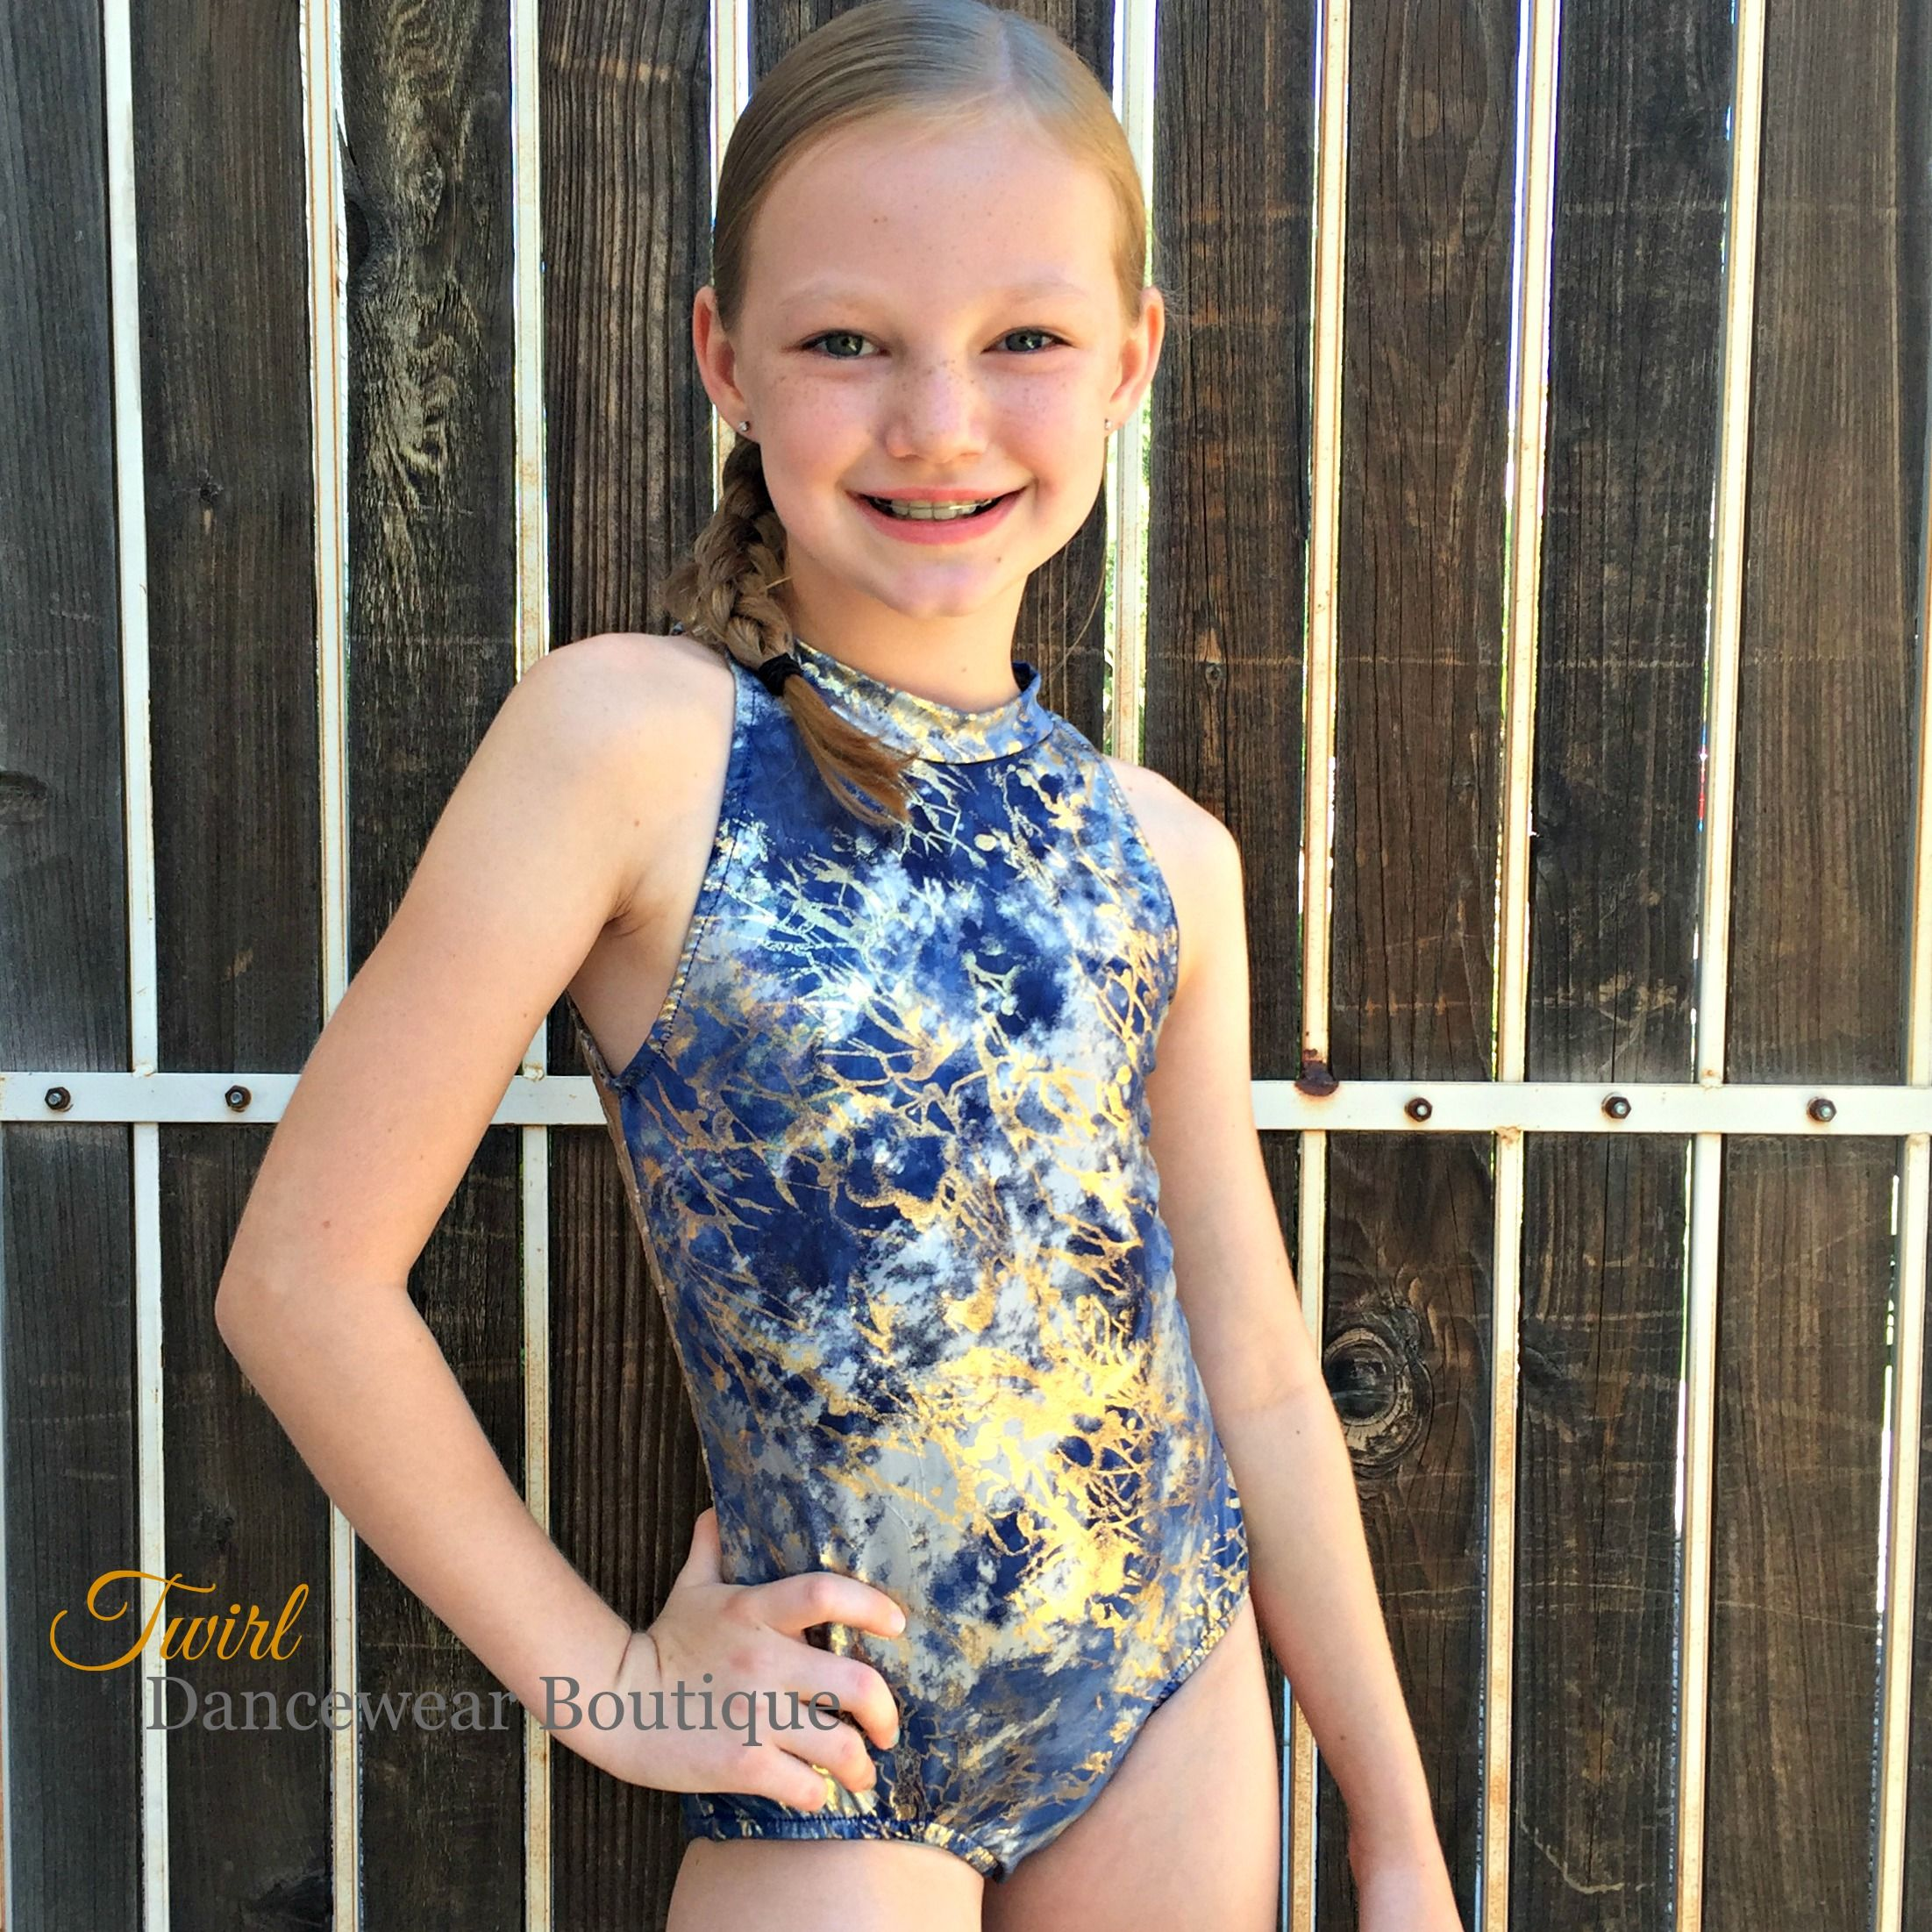 bf82d376e2d35 New Arrivals at Twirl Dancewear Boutique...check us out on FB  Twirldb New  Fashion Dance wear